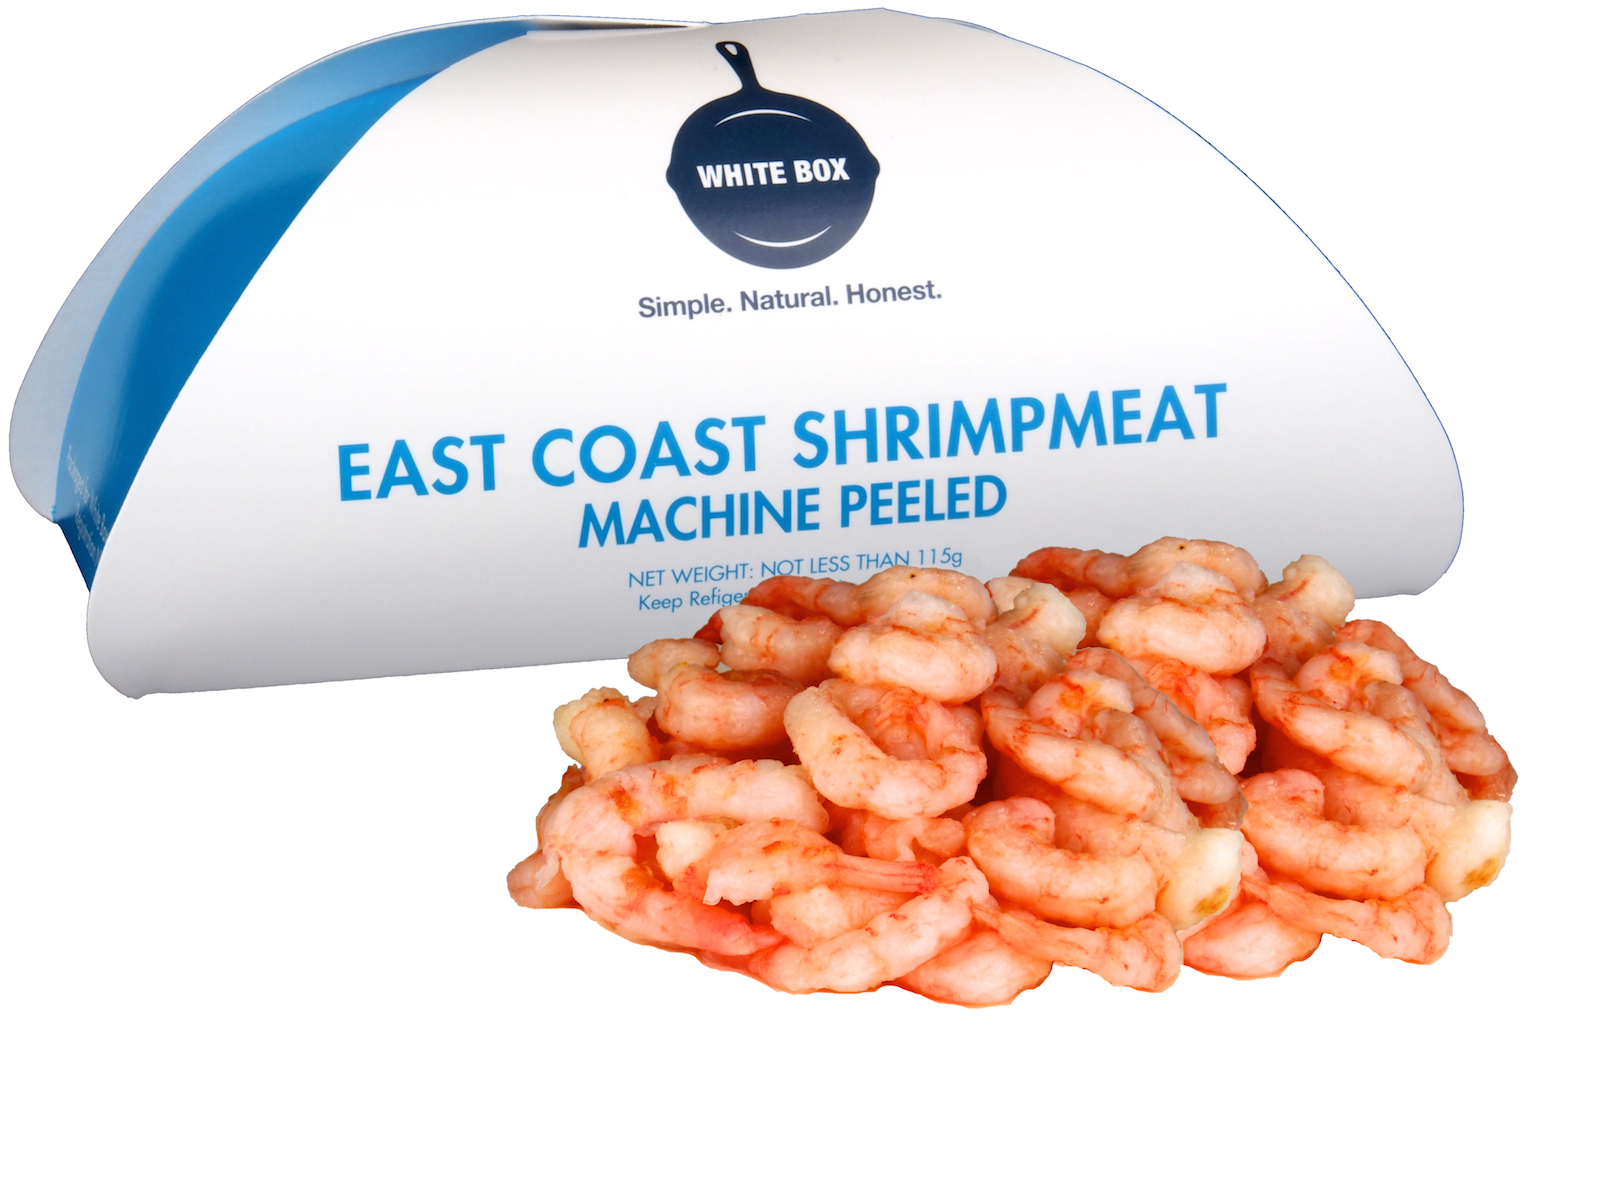 East Coast Shrimpmeat with Box.jpg